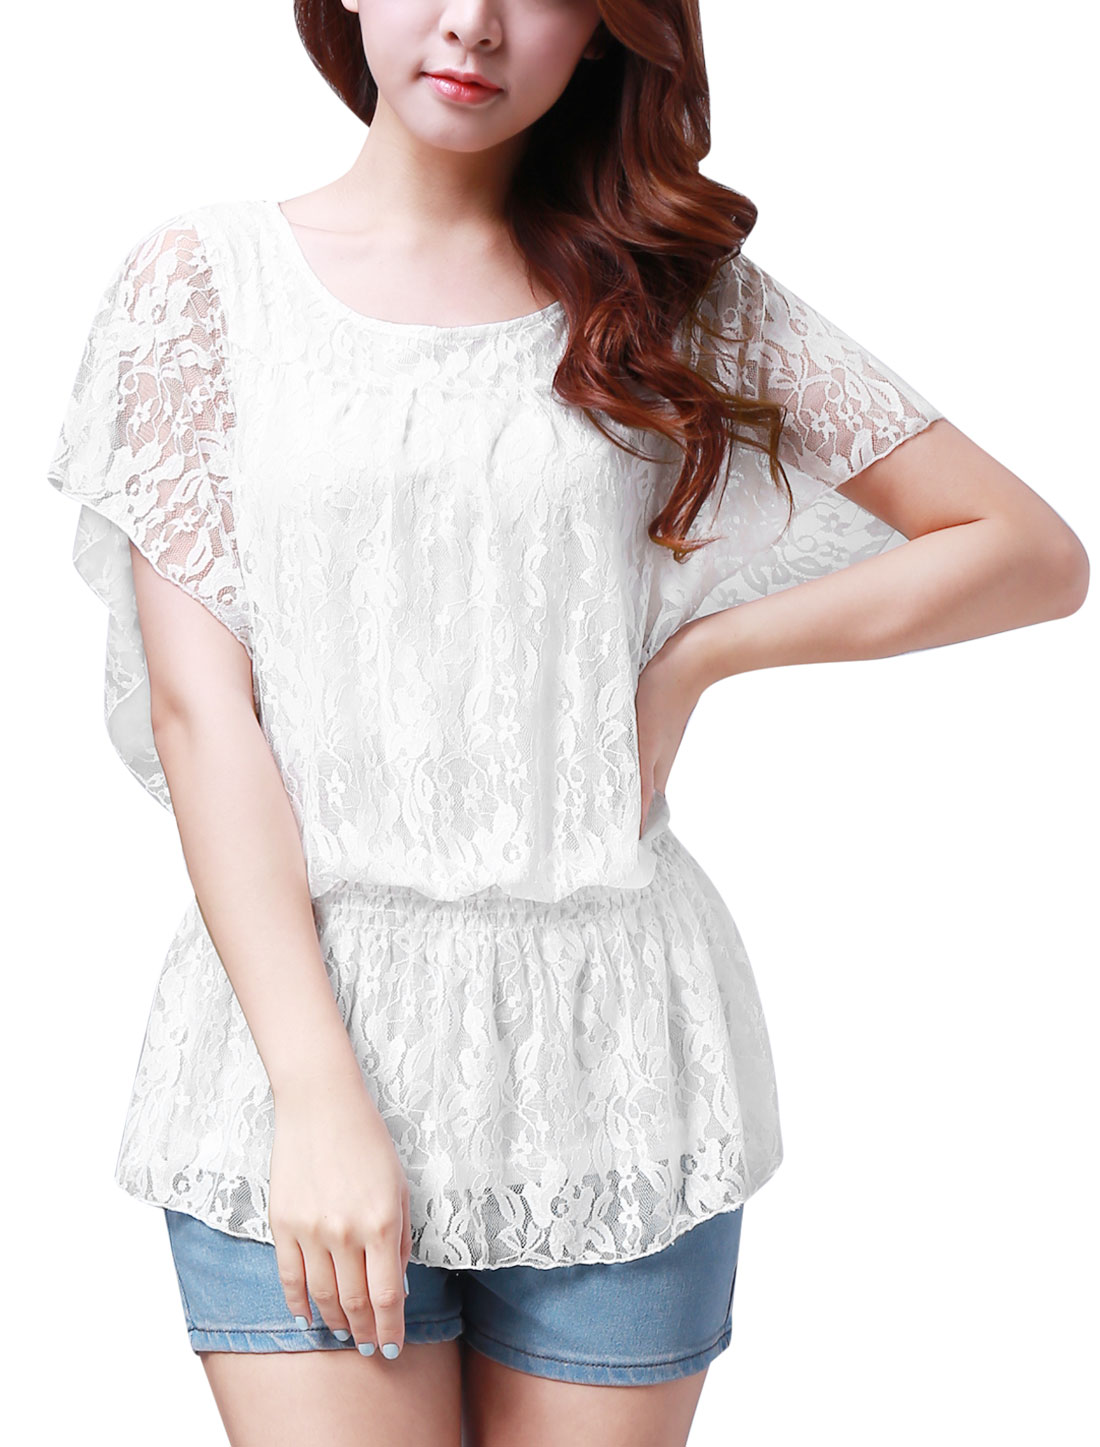 Women Newly Rulled Short Sleeve All Over Lace Design White Tops L